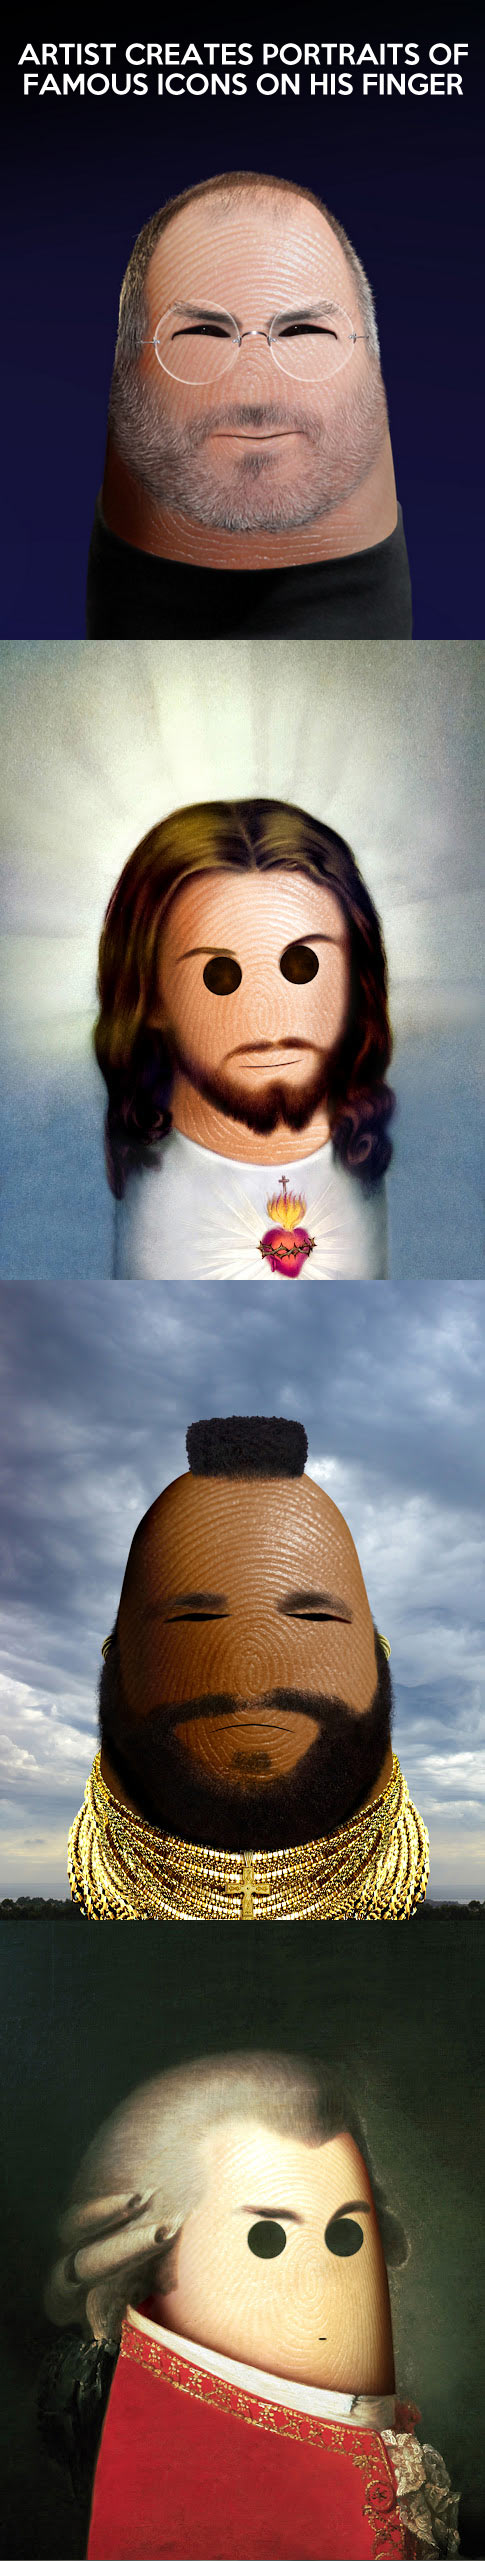 funny-iconic-people-finger-Hitler-Jesus